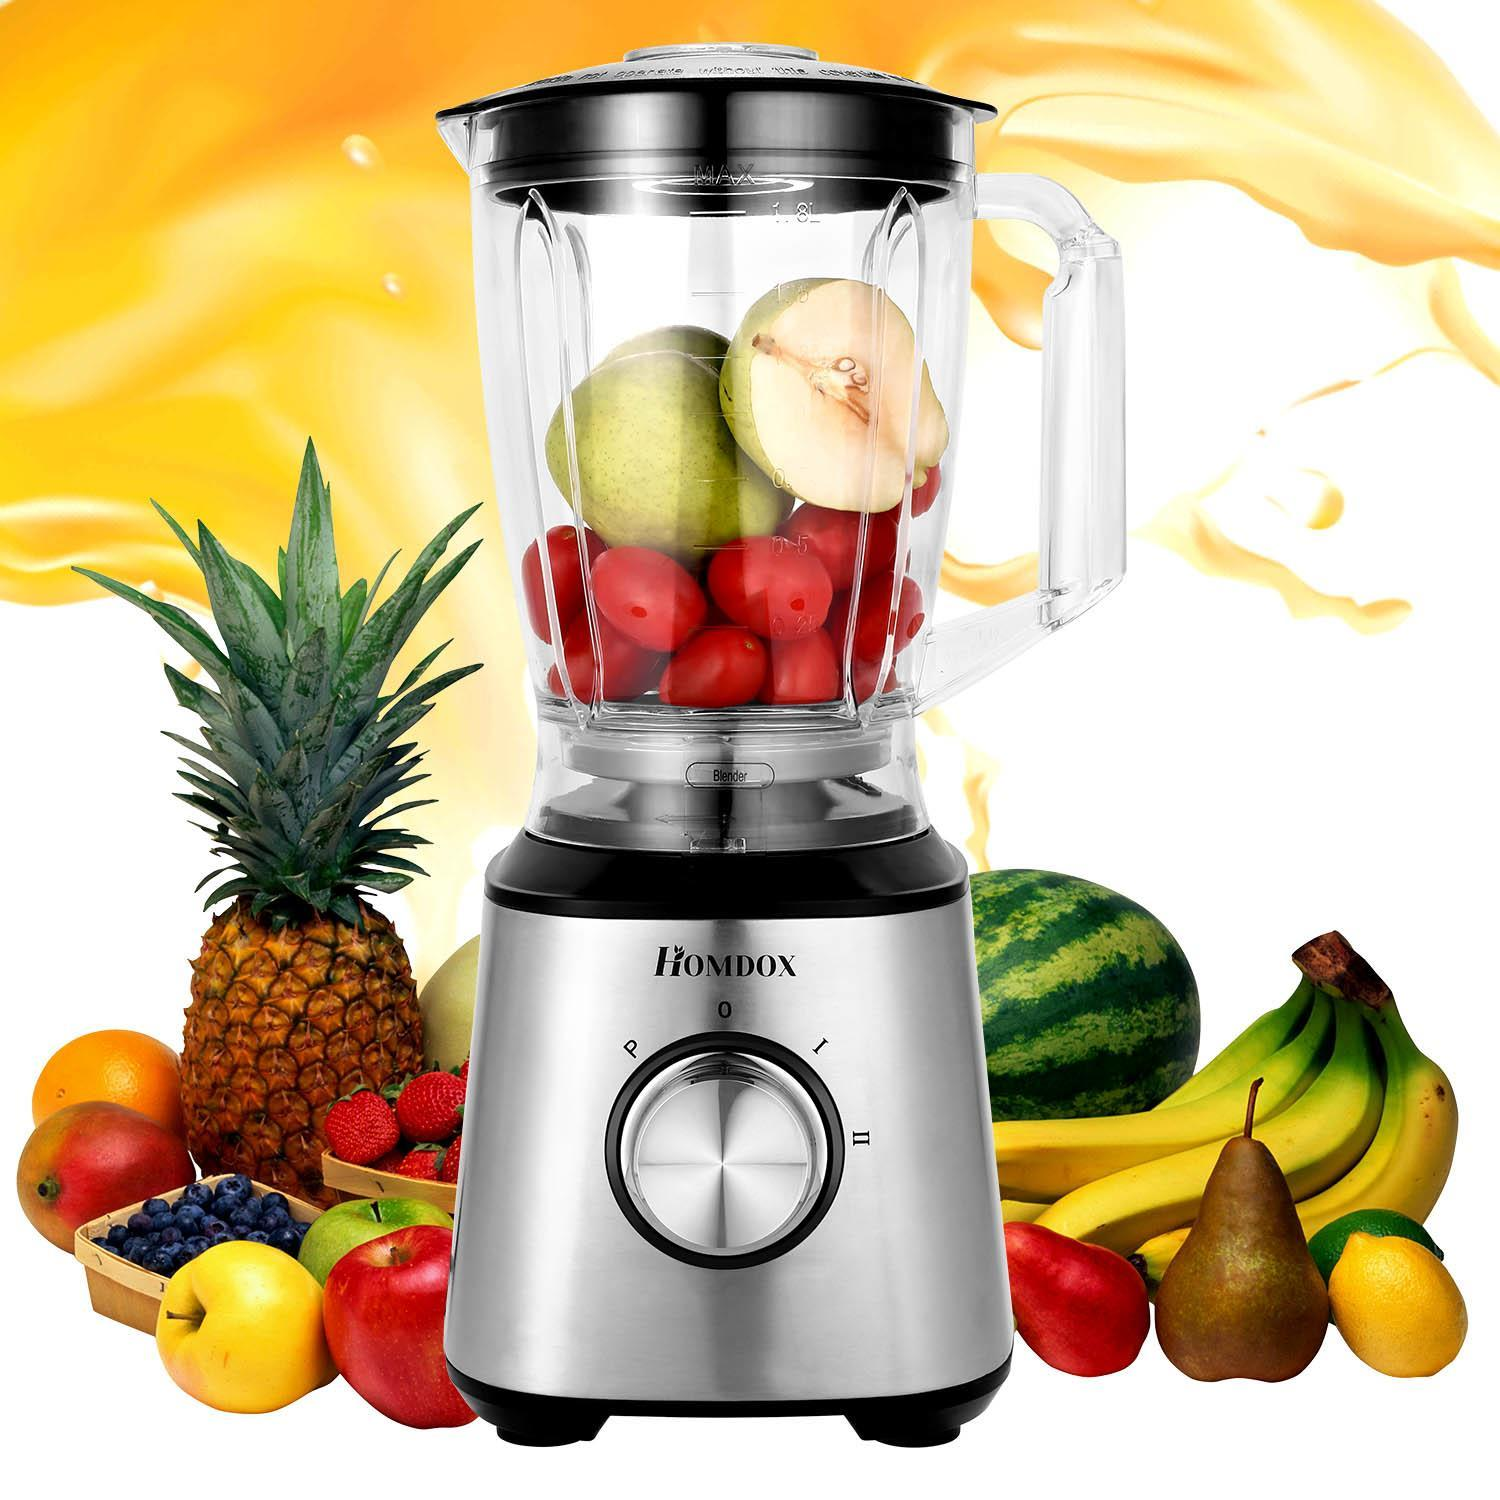 800W Blender 3-in-1 with Food Processor Electric Kitchen Mixer and1.8L Personal Blending Cup YASTE